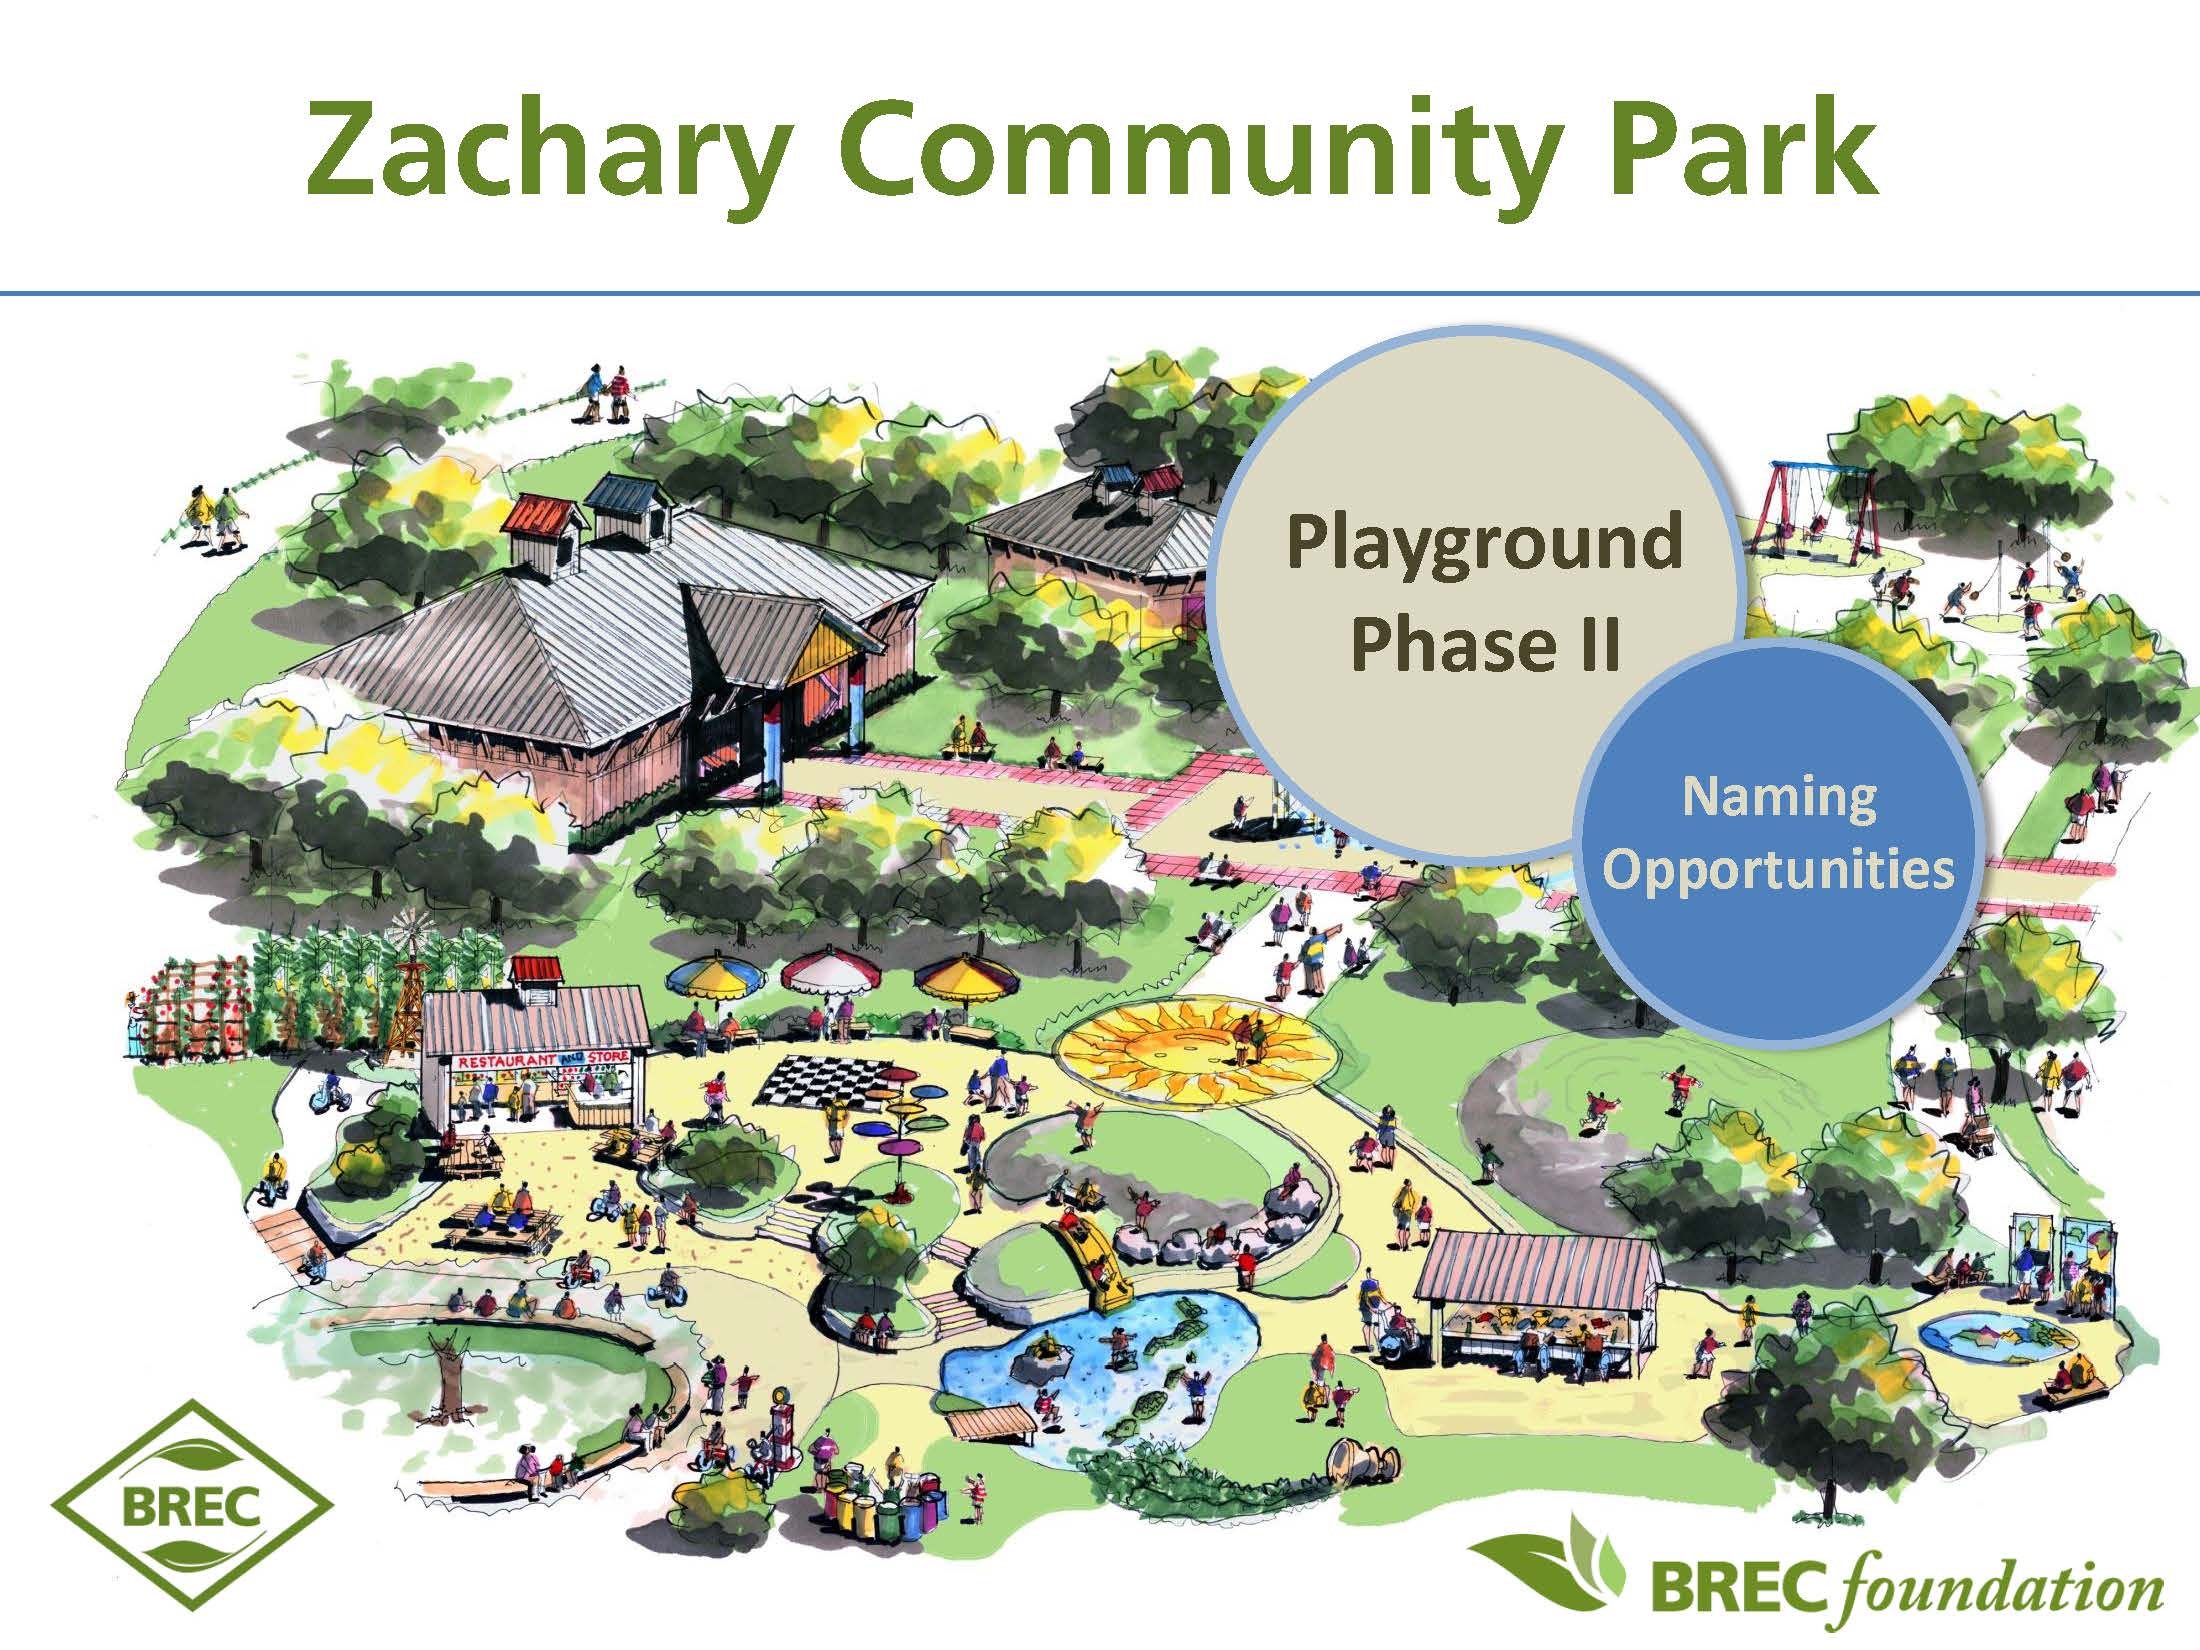 Zachary_PlaygroundPhaseII_Naming Opportunities_Page_01.jpg